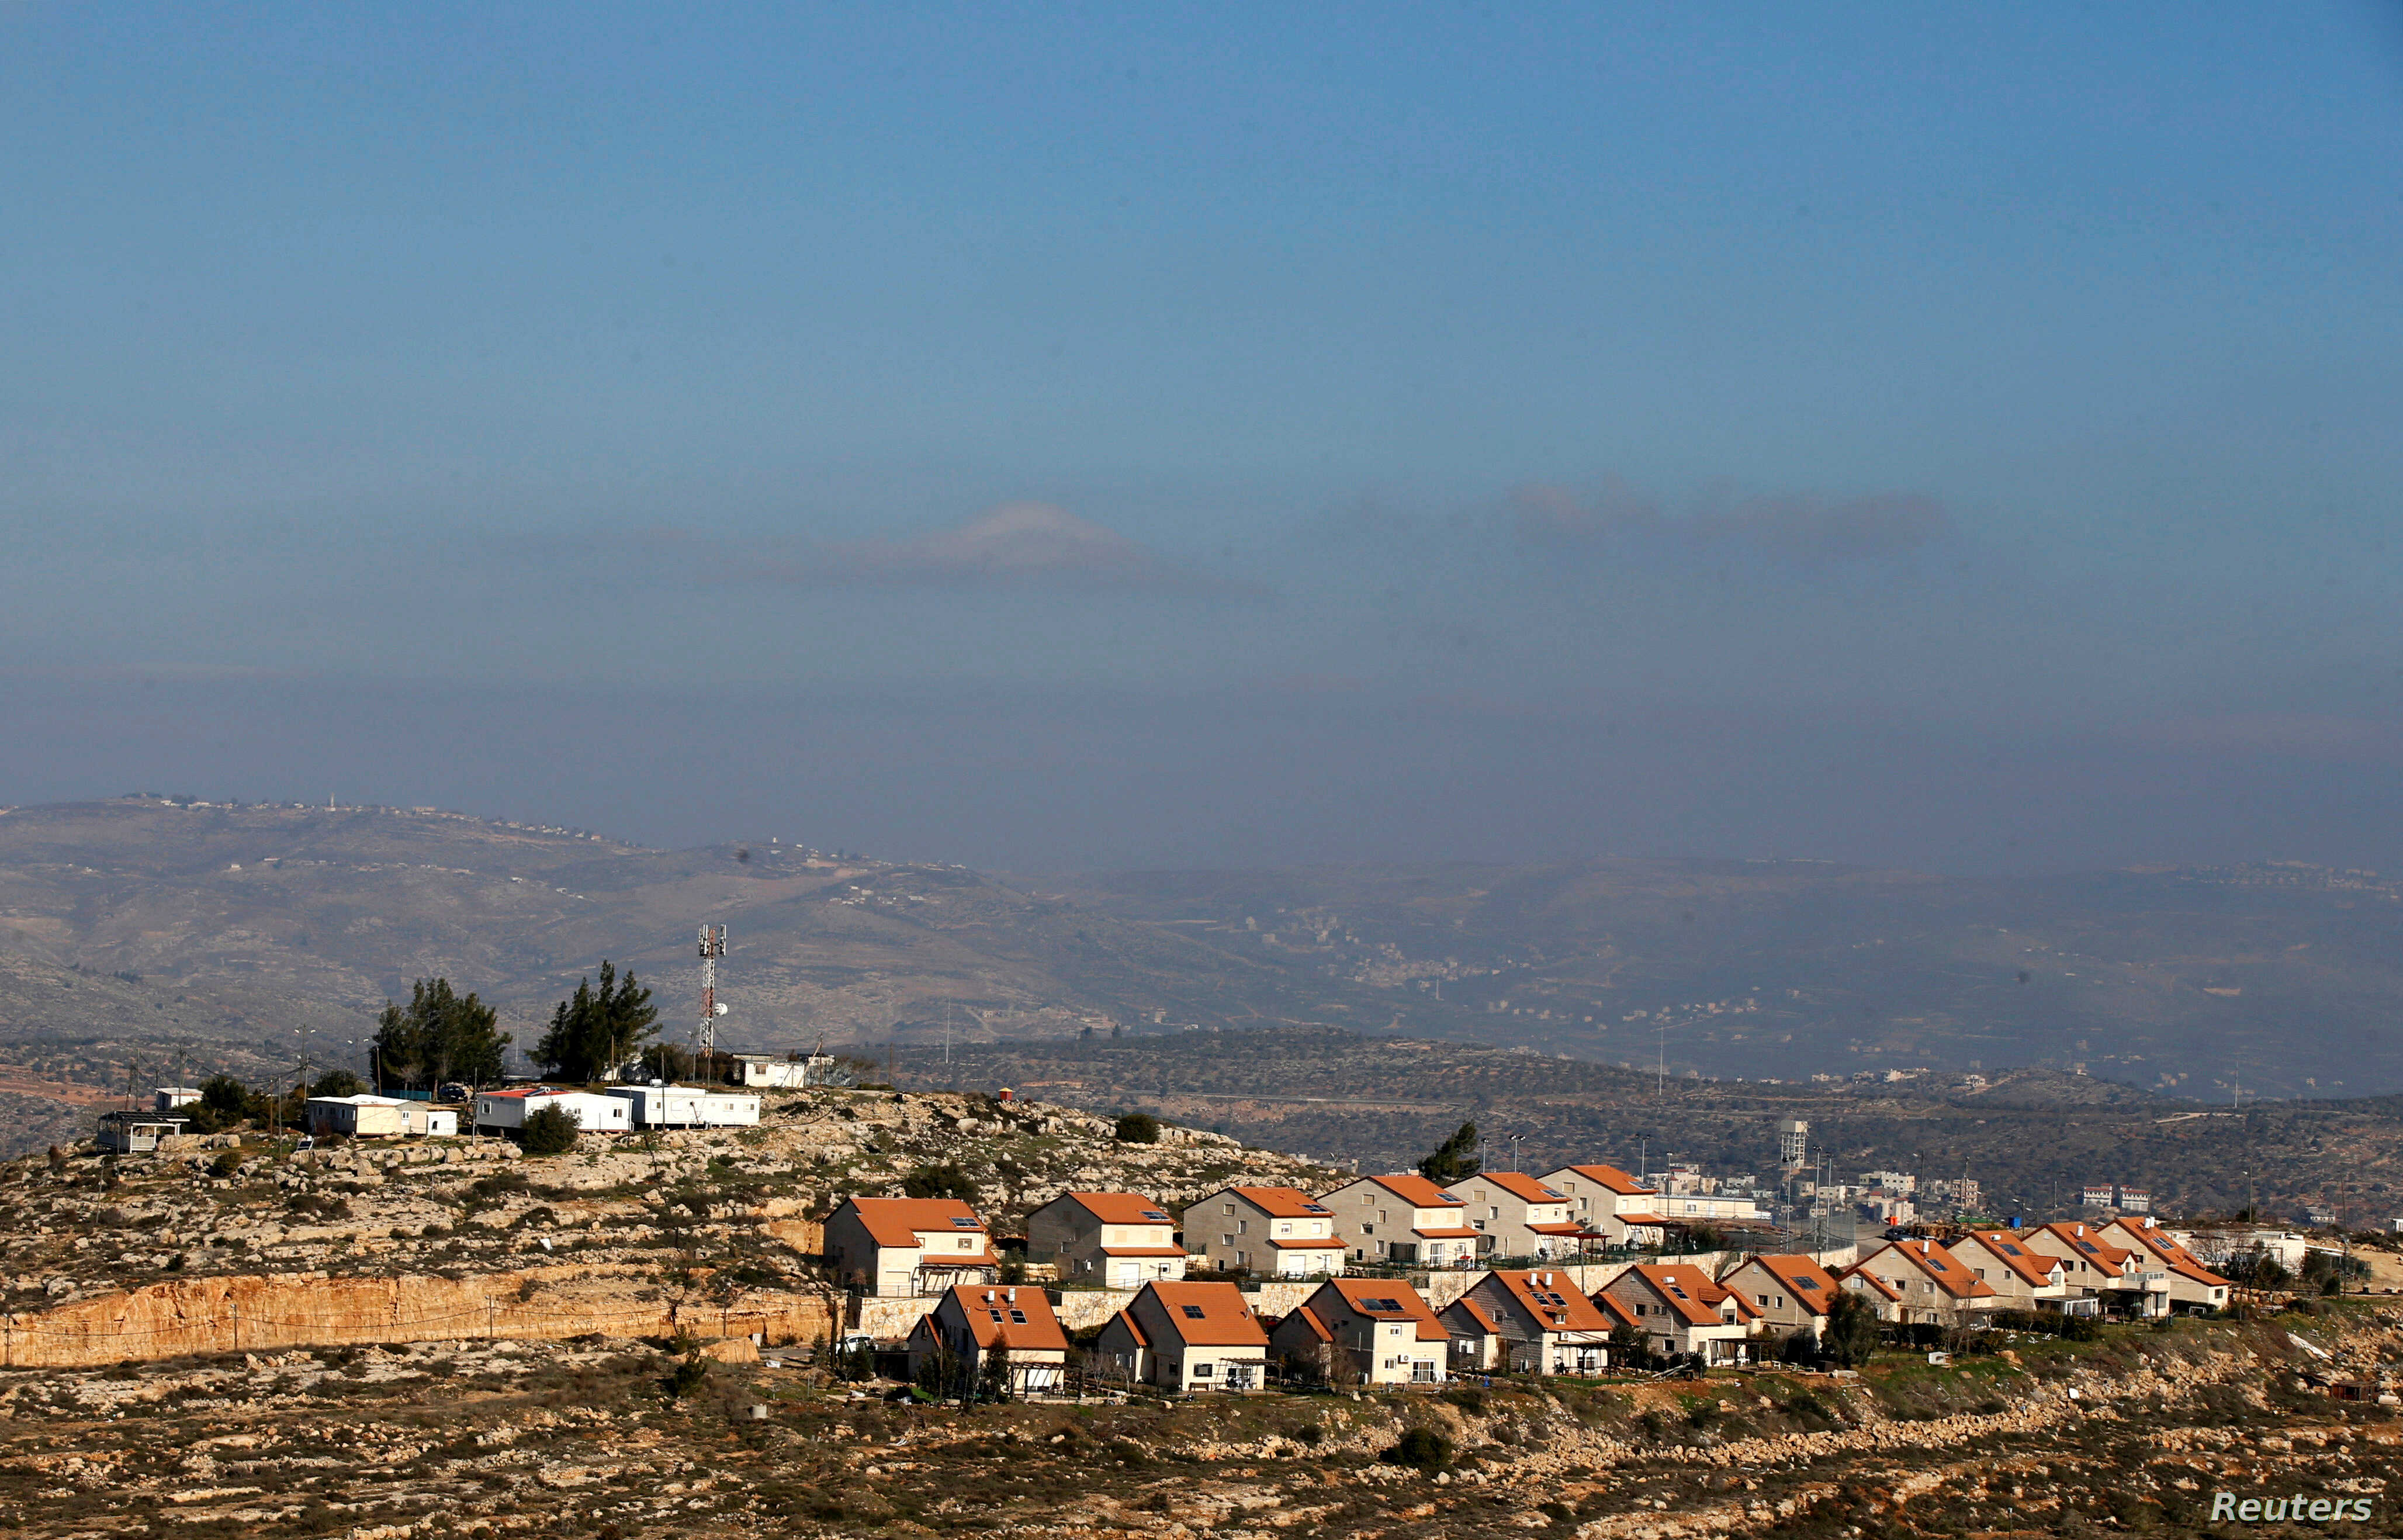 A picture shows homes near the Israeli outpost of Palgey Maim, in the occupied West Bank, Feb. 6, 2017.